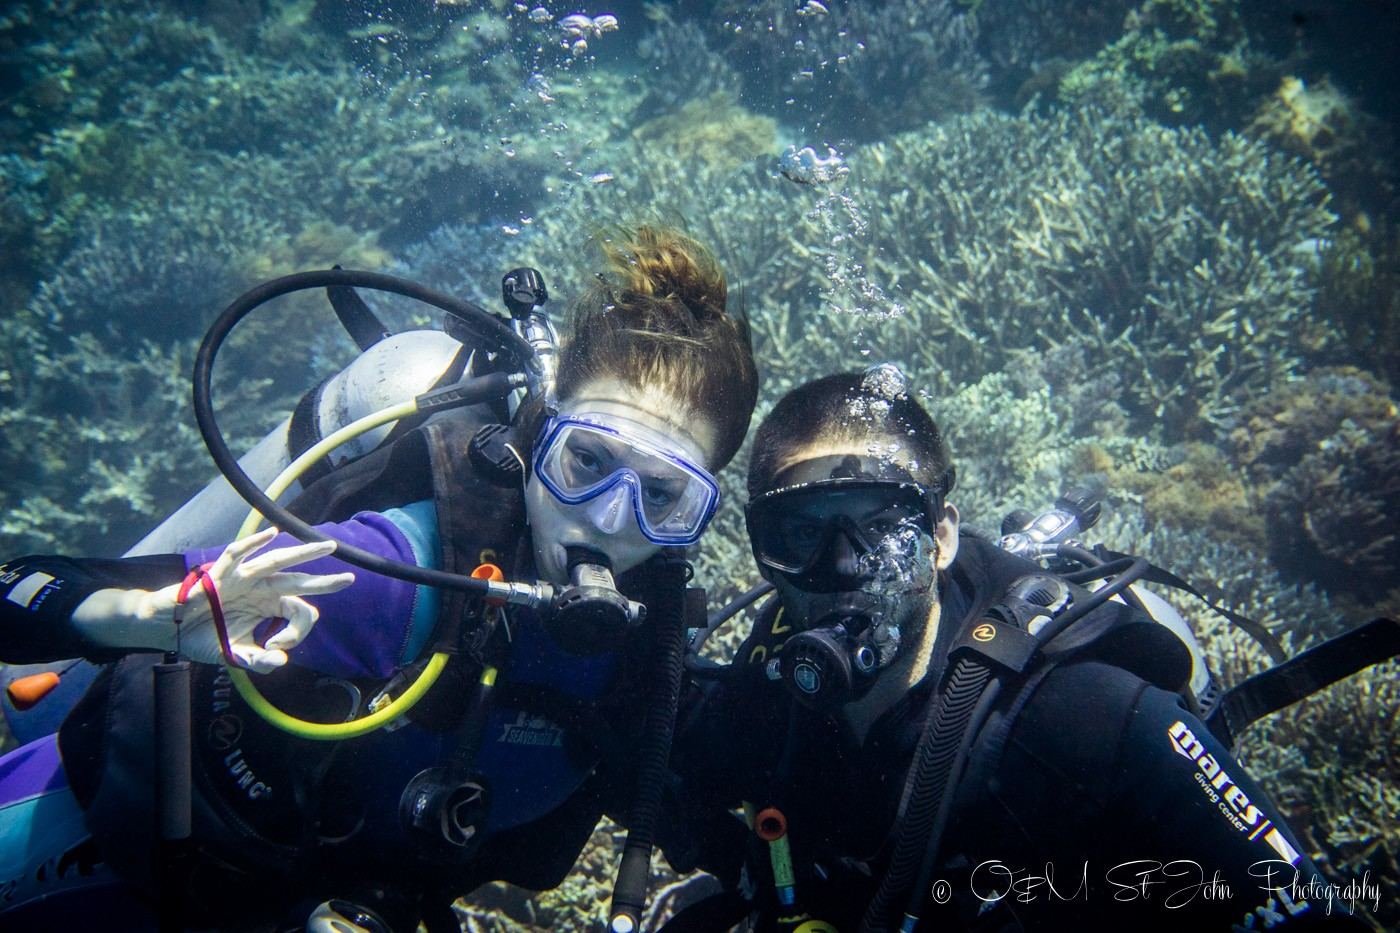 Our last dive on the liveaboard in Komodo National Park